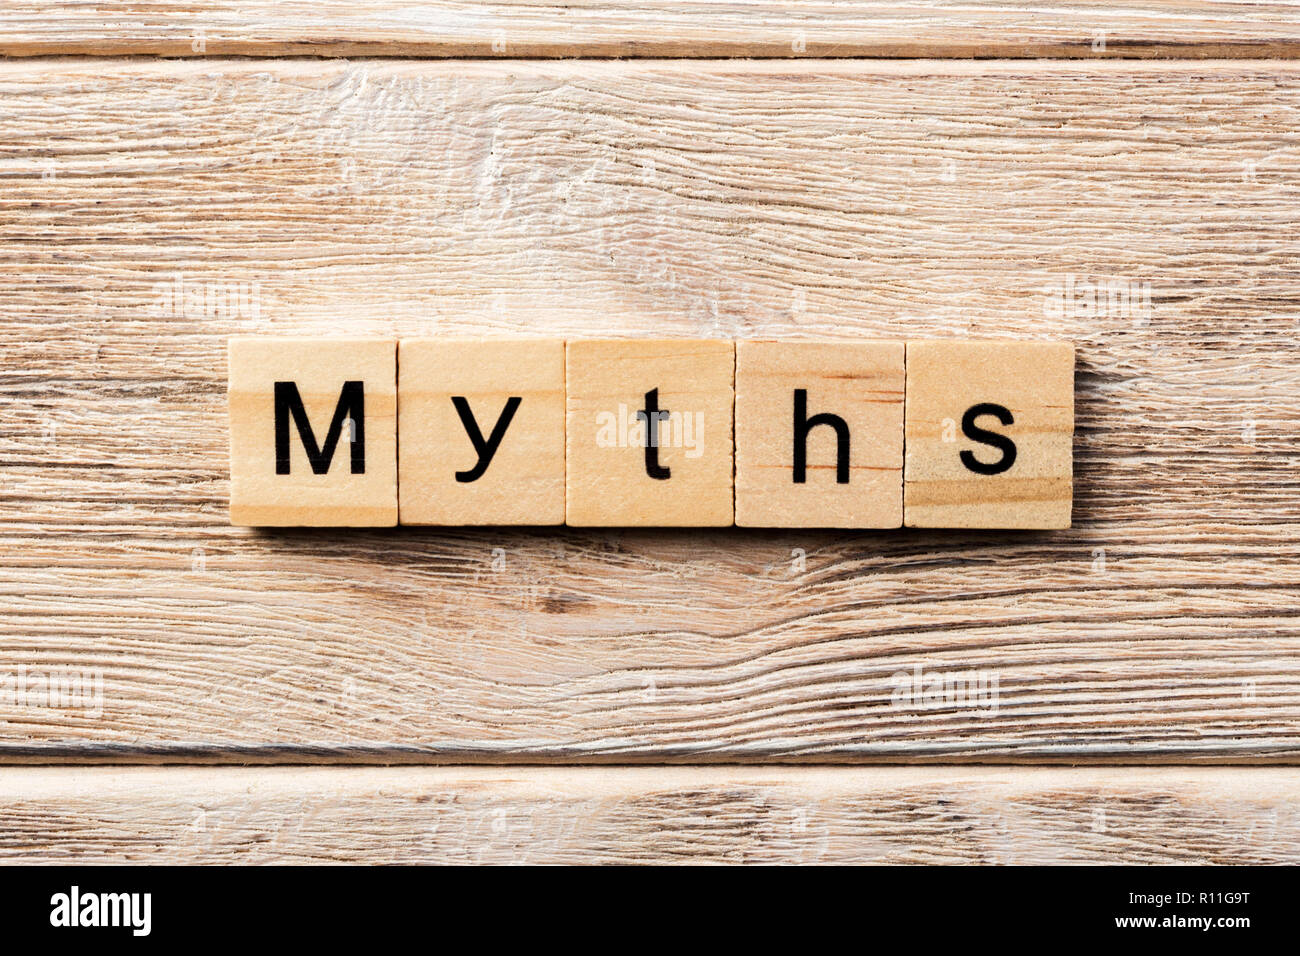 myths word written on wood block. myths text on table, concept. - Stock Image